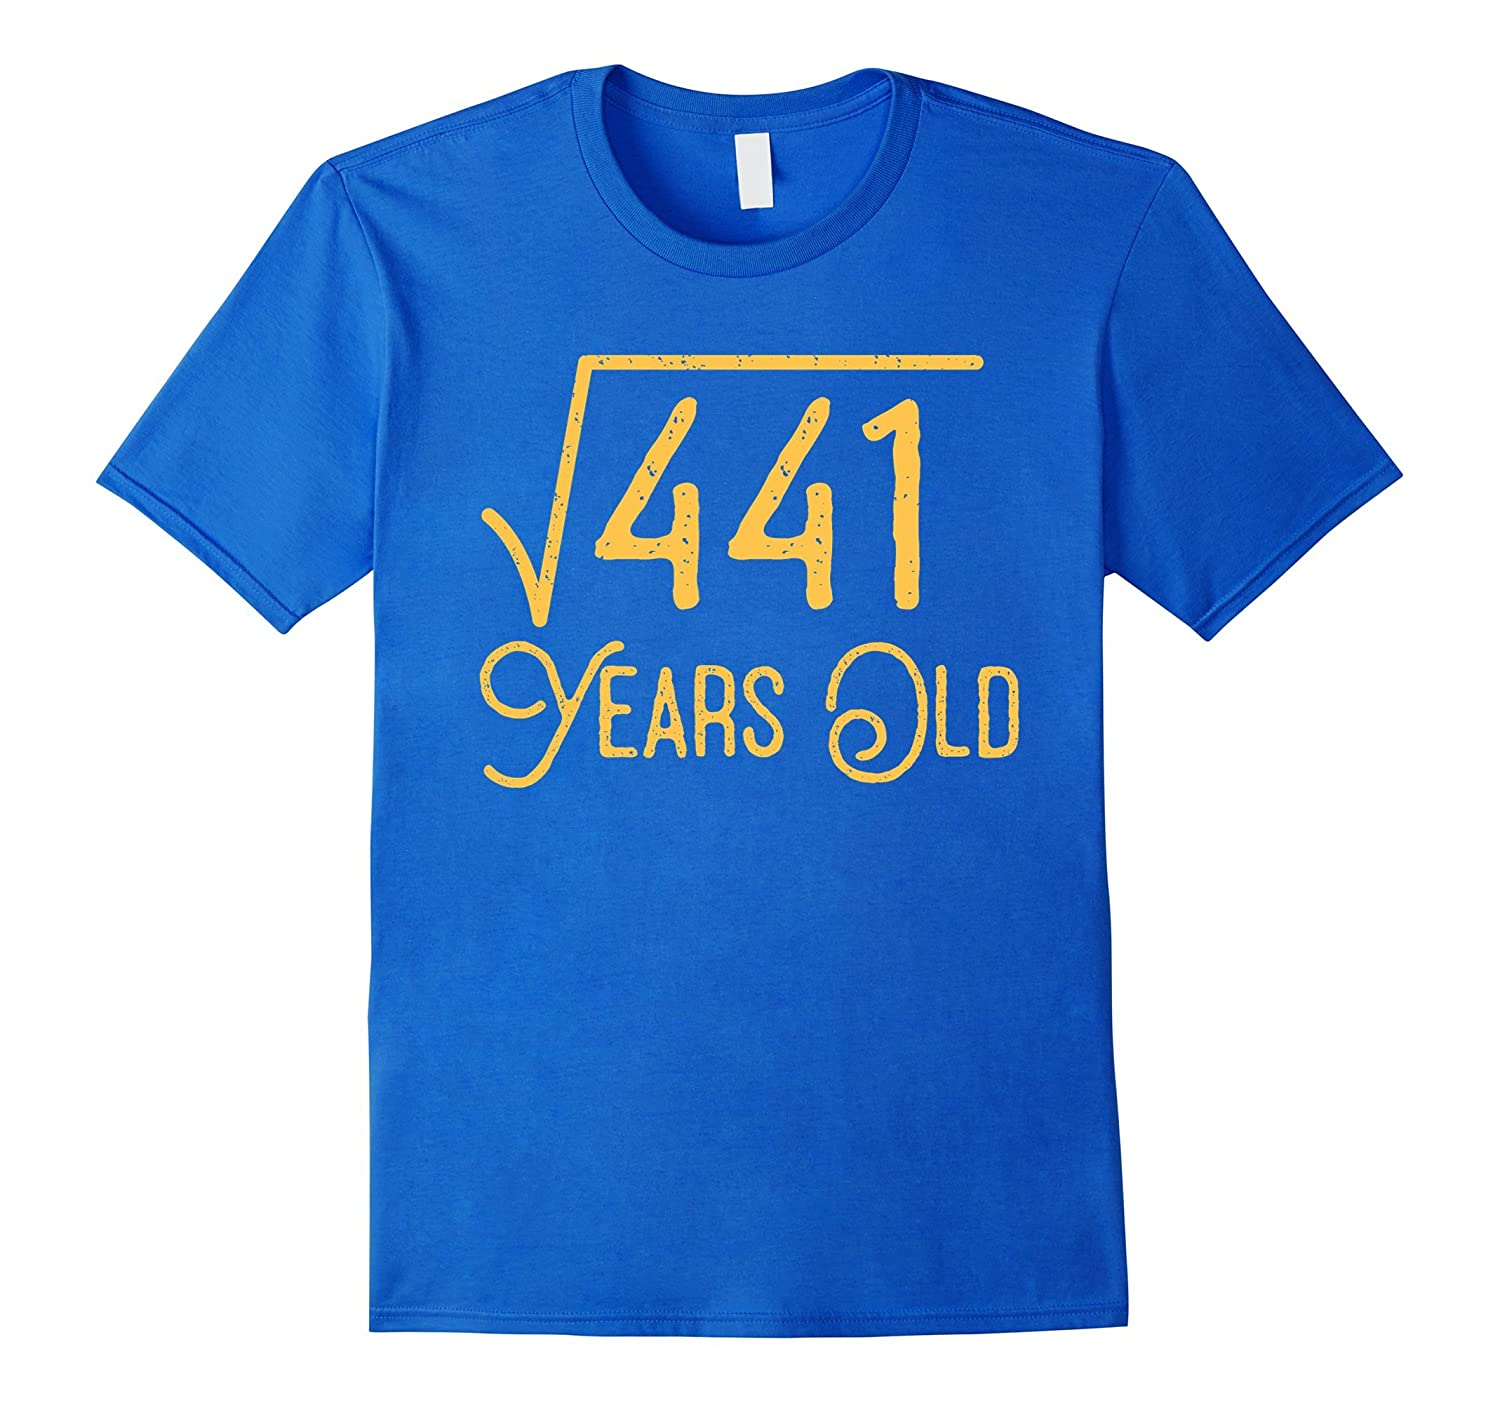 21st Birthday Gift 21 Years Old Square Root Of 441 T Shirt Ah My